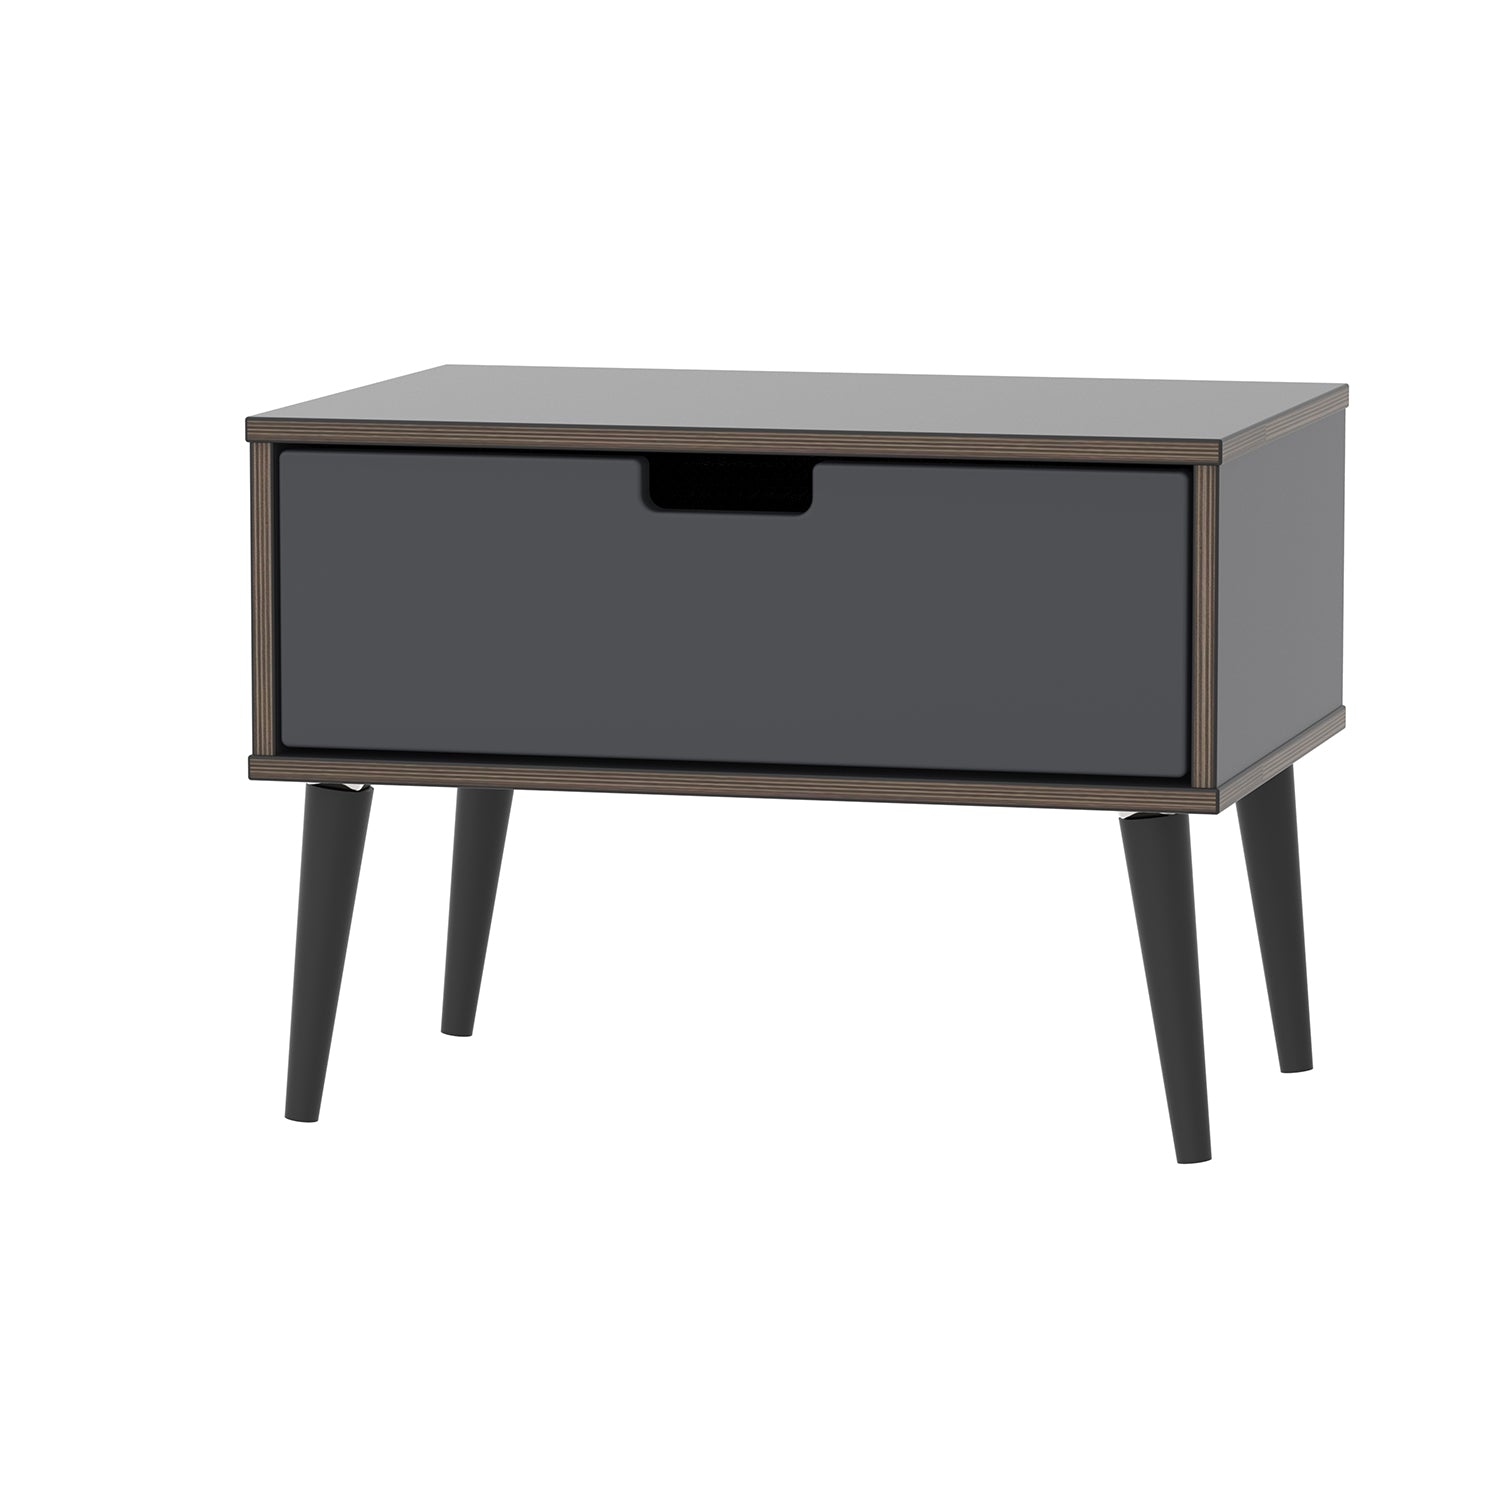 1 Drawer Midi Chest in Graphite with Black Wooden Legs